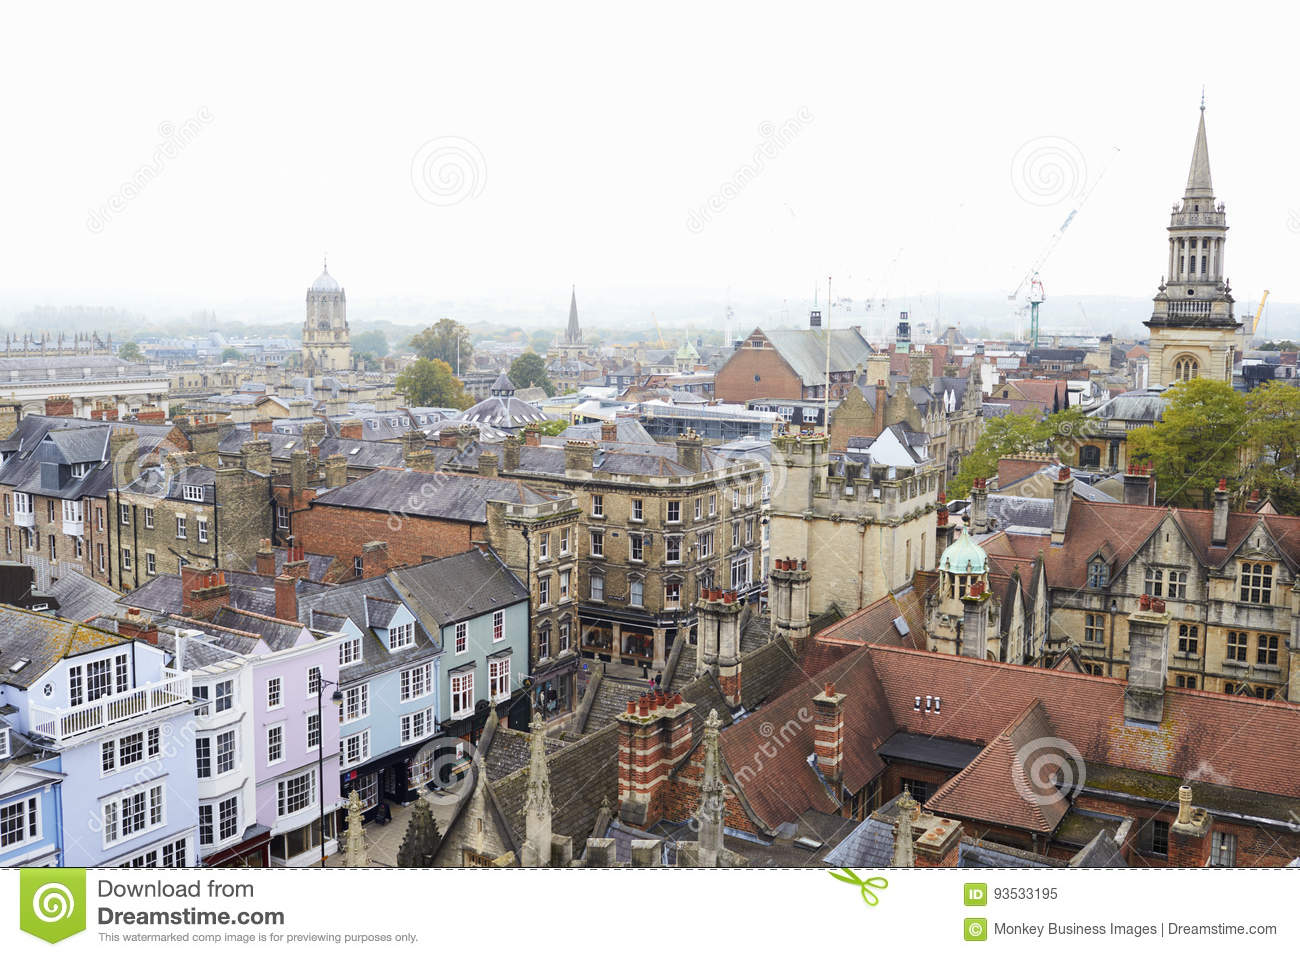 OXFORD/ UK- OCTOBER 26 2016: Aerial View Of Oxford City Showing College Buildings And Shops